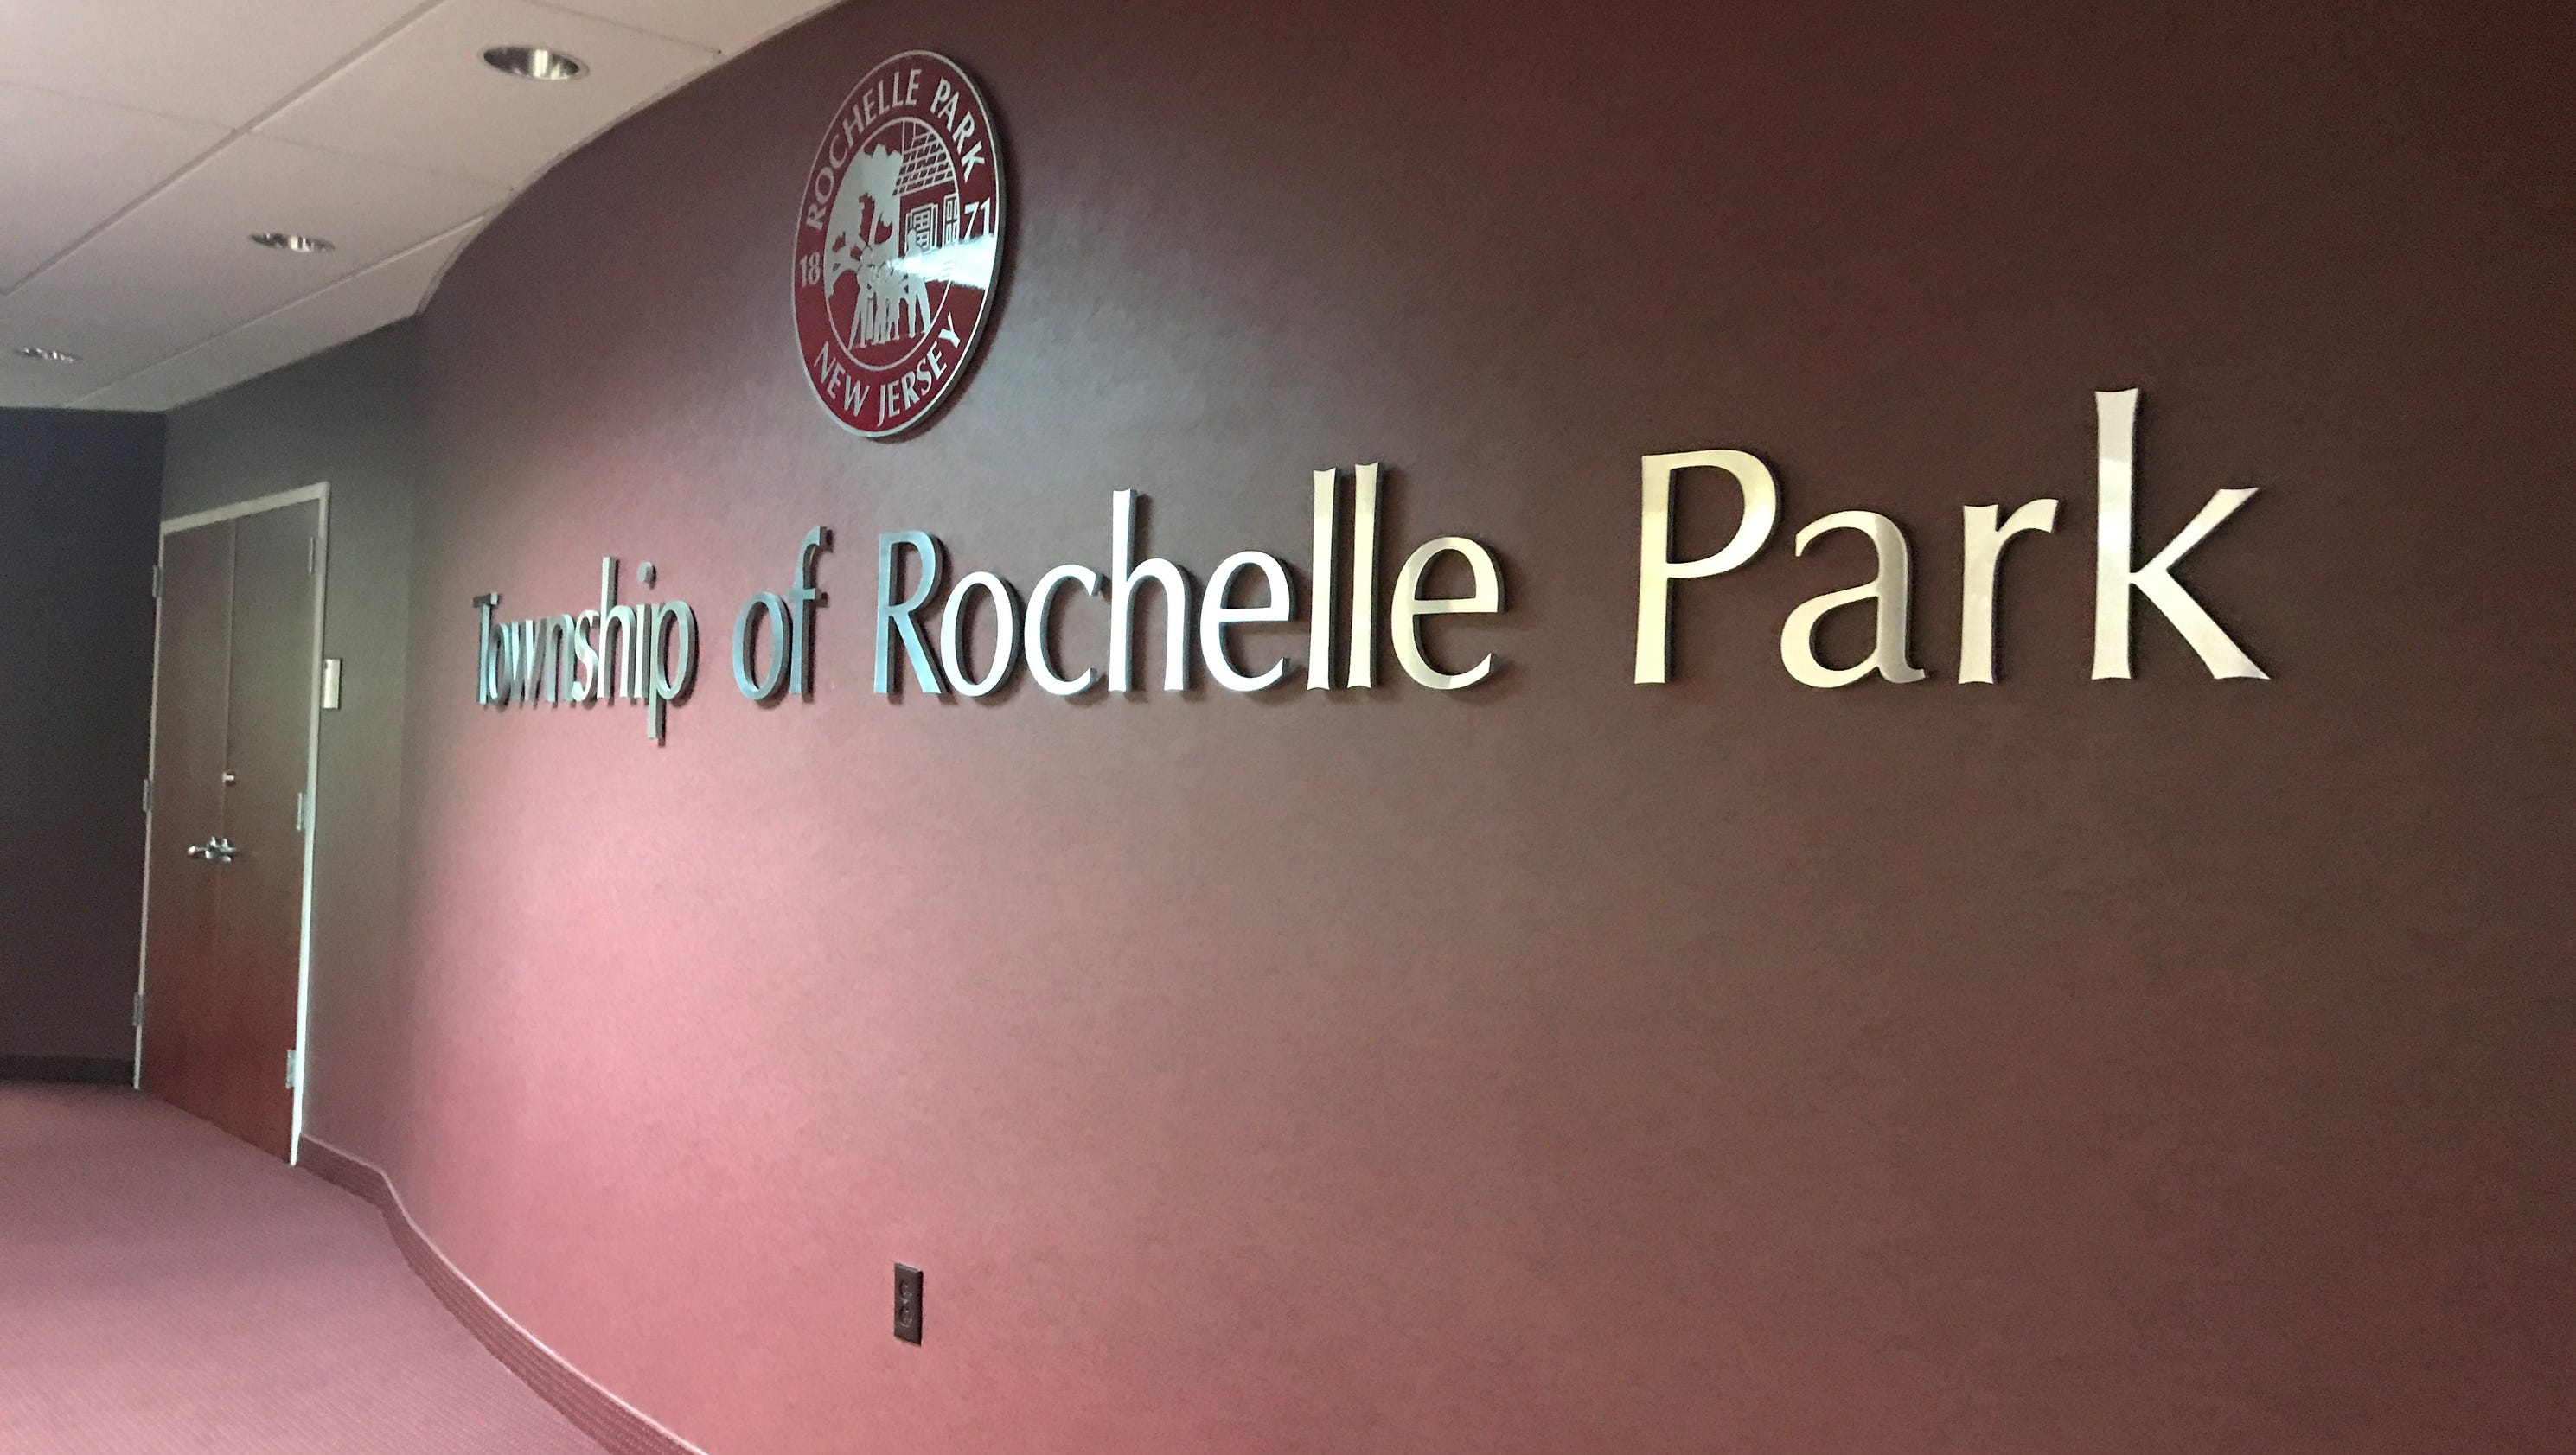 rochelle park chatrooms Sage day's rochelle park high school campus in new jersey has 32 on-site faculty members, along with administration who are here to assist you.